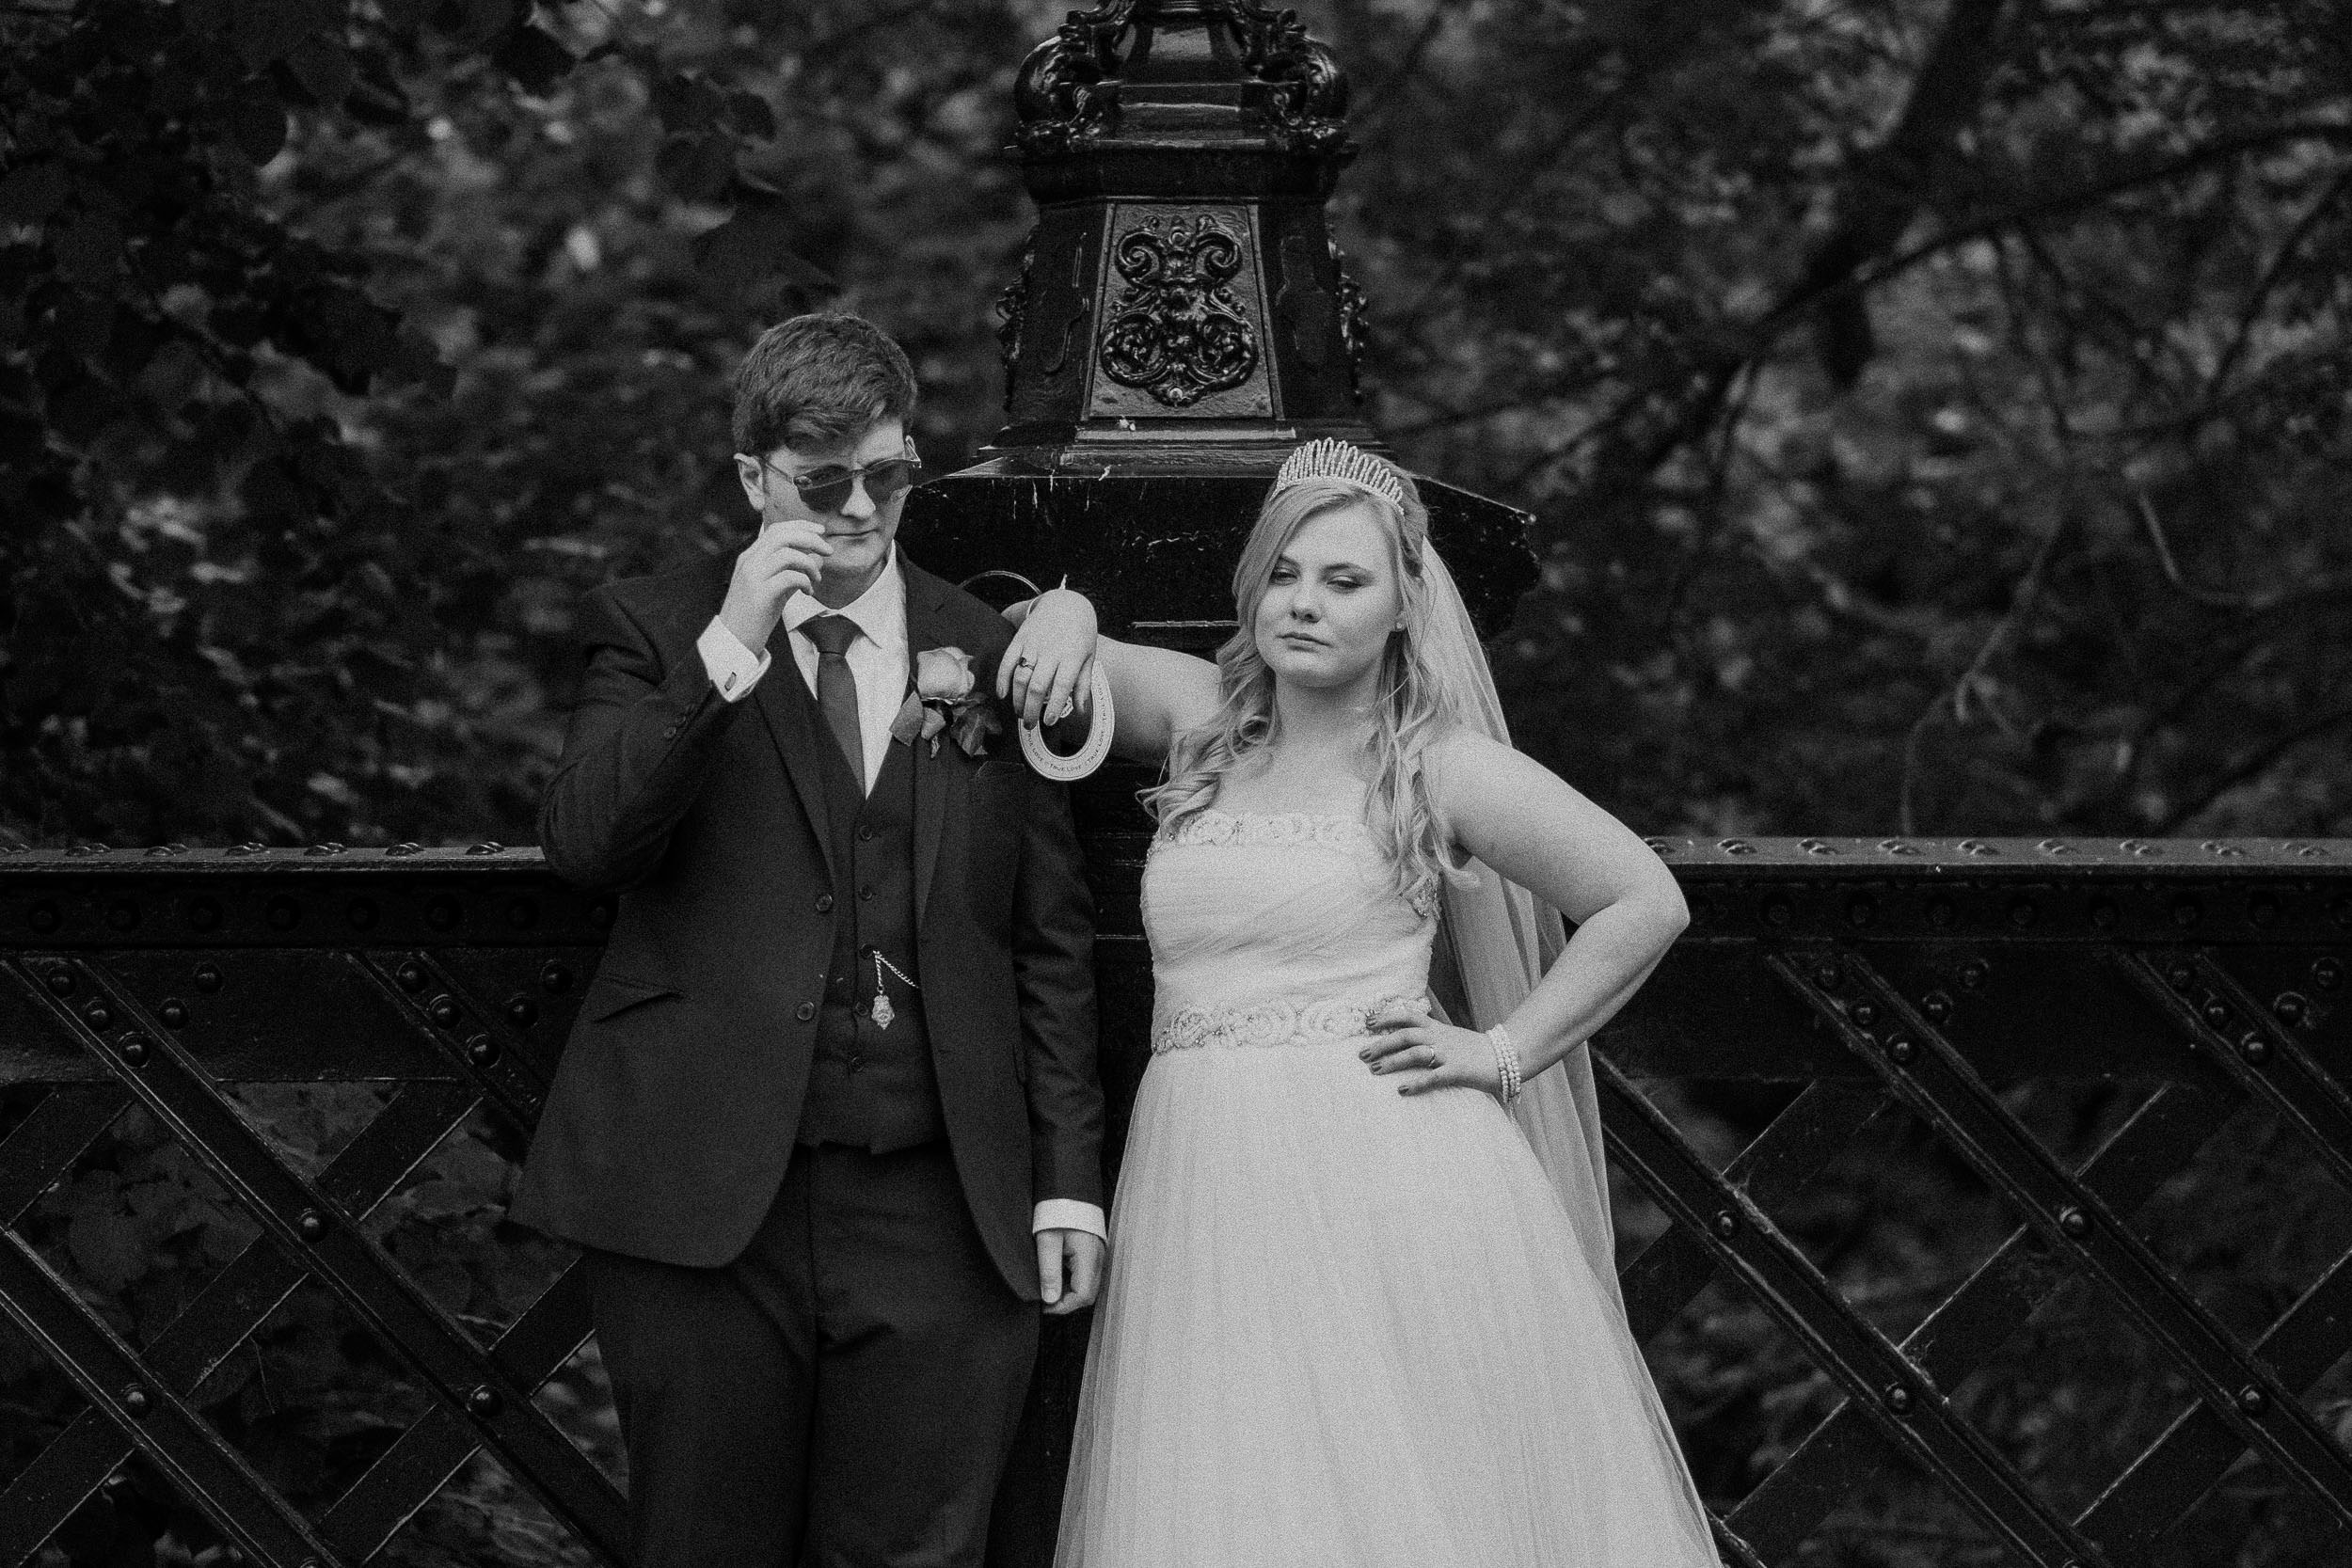 Cool black and white photo of bride and groom in sunglasses on bridge